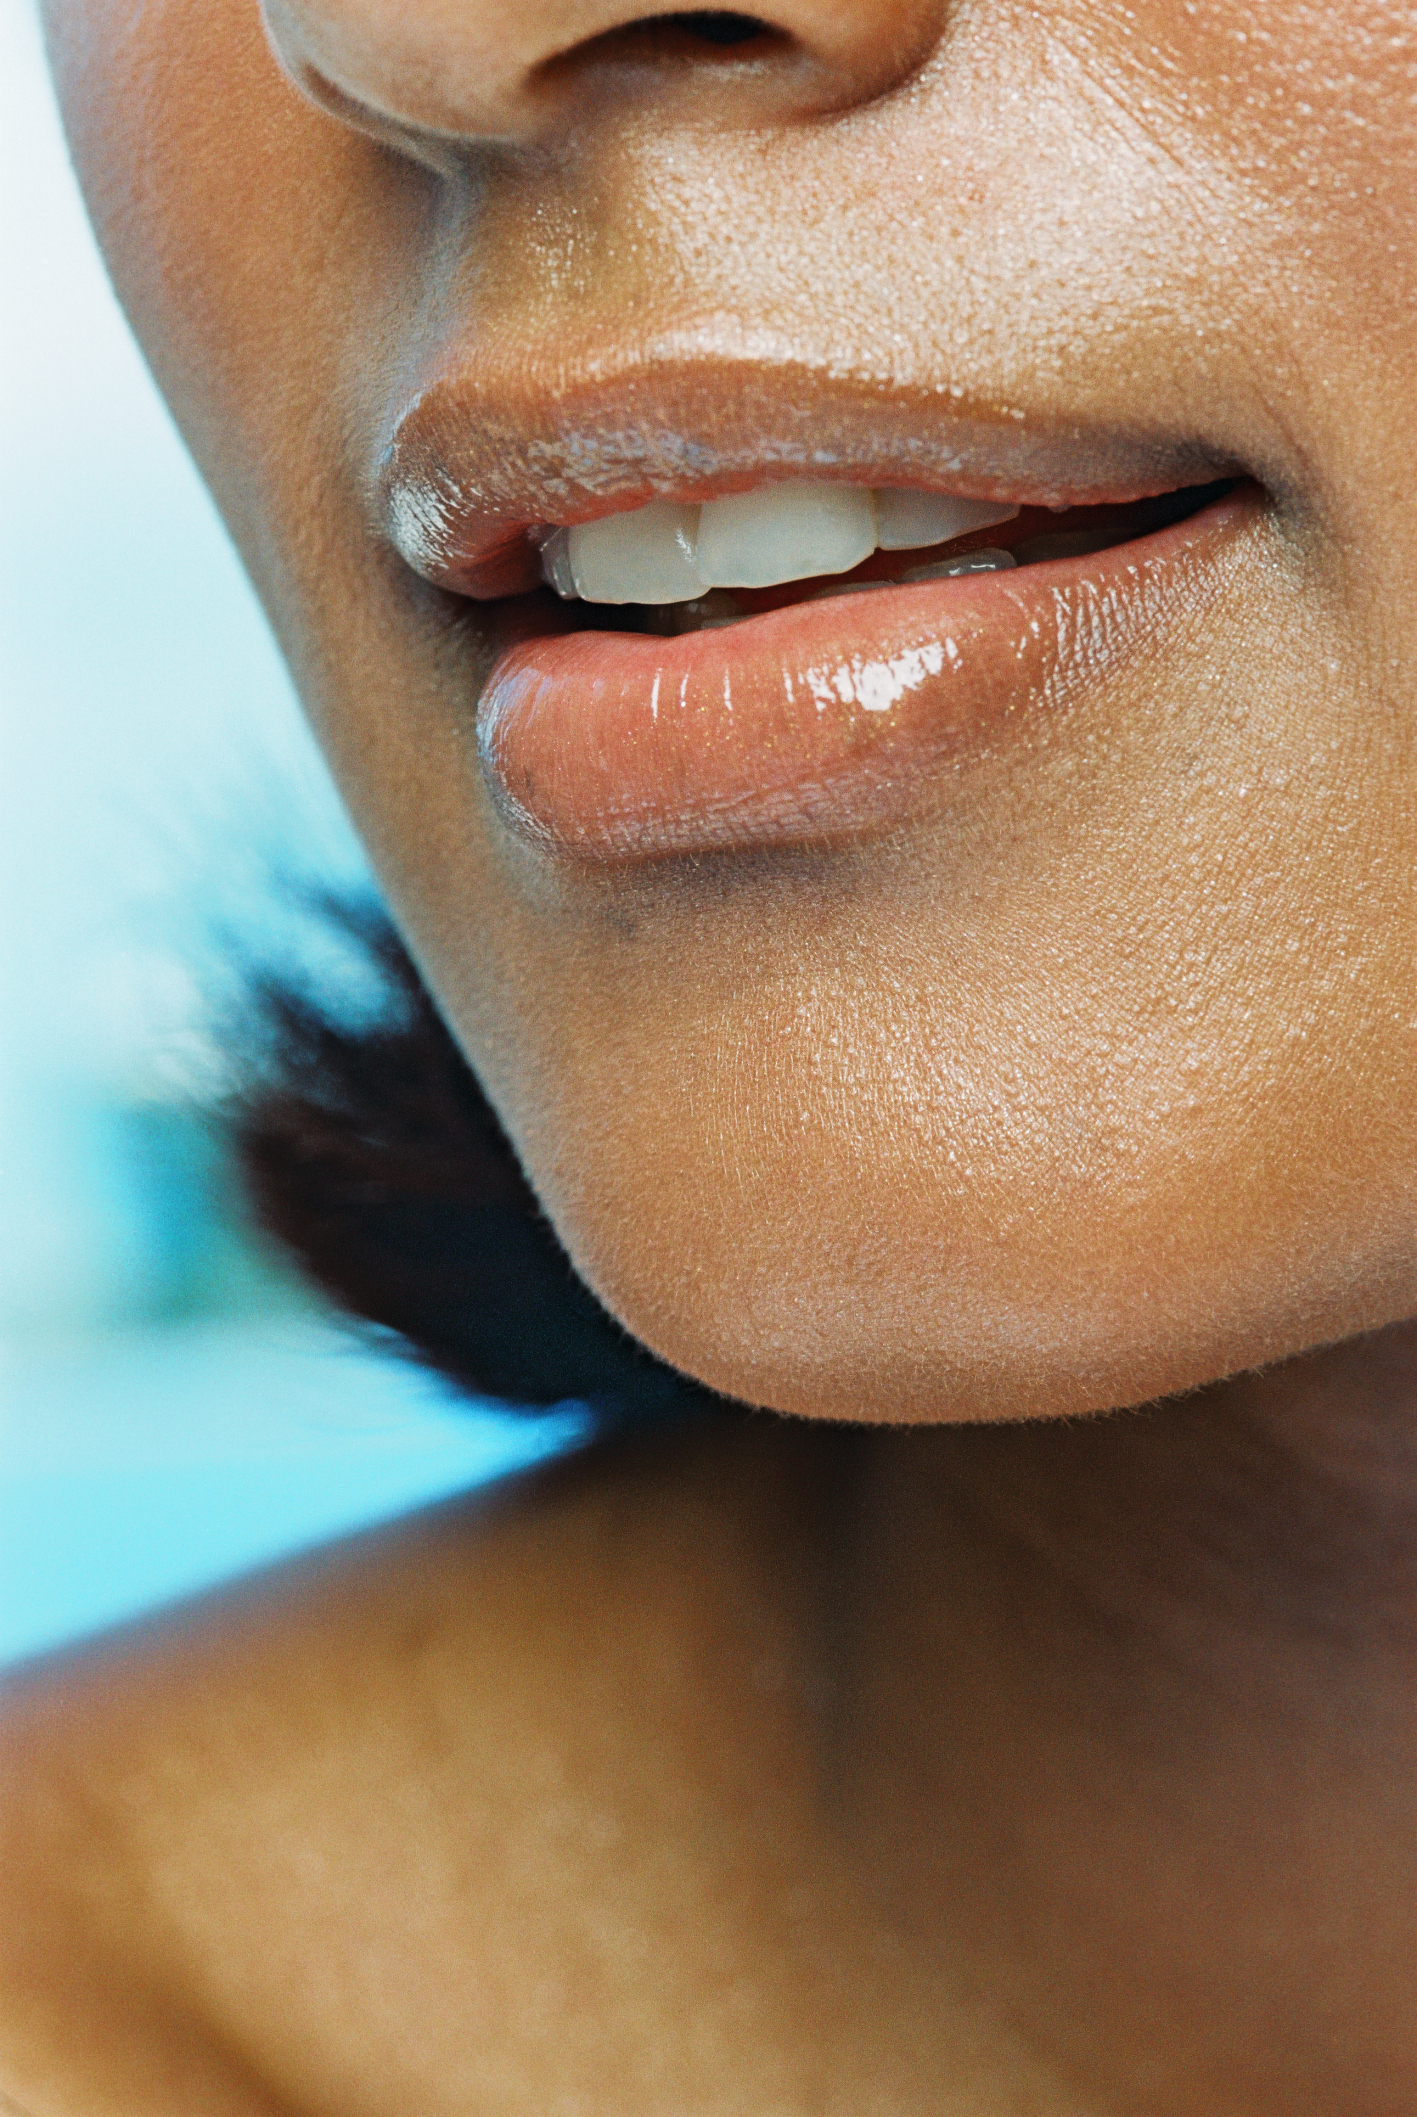 How to Cure Razor Burn on a Woman's Upper Lip